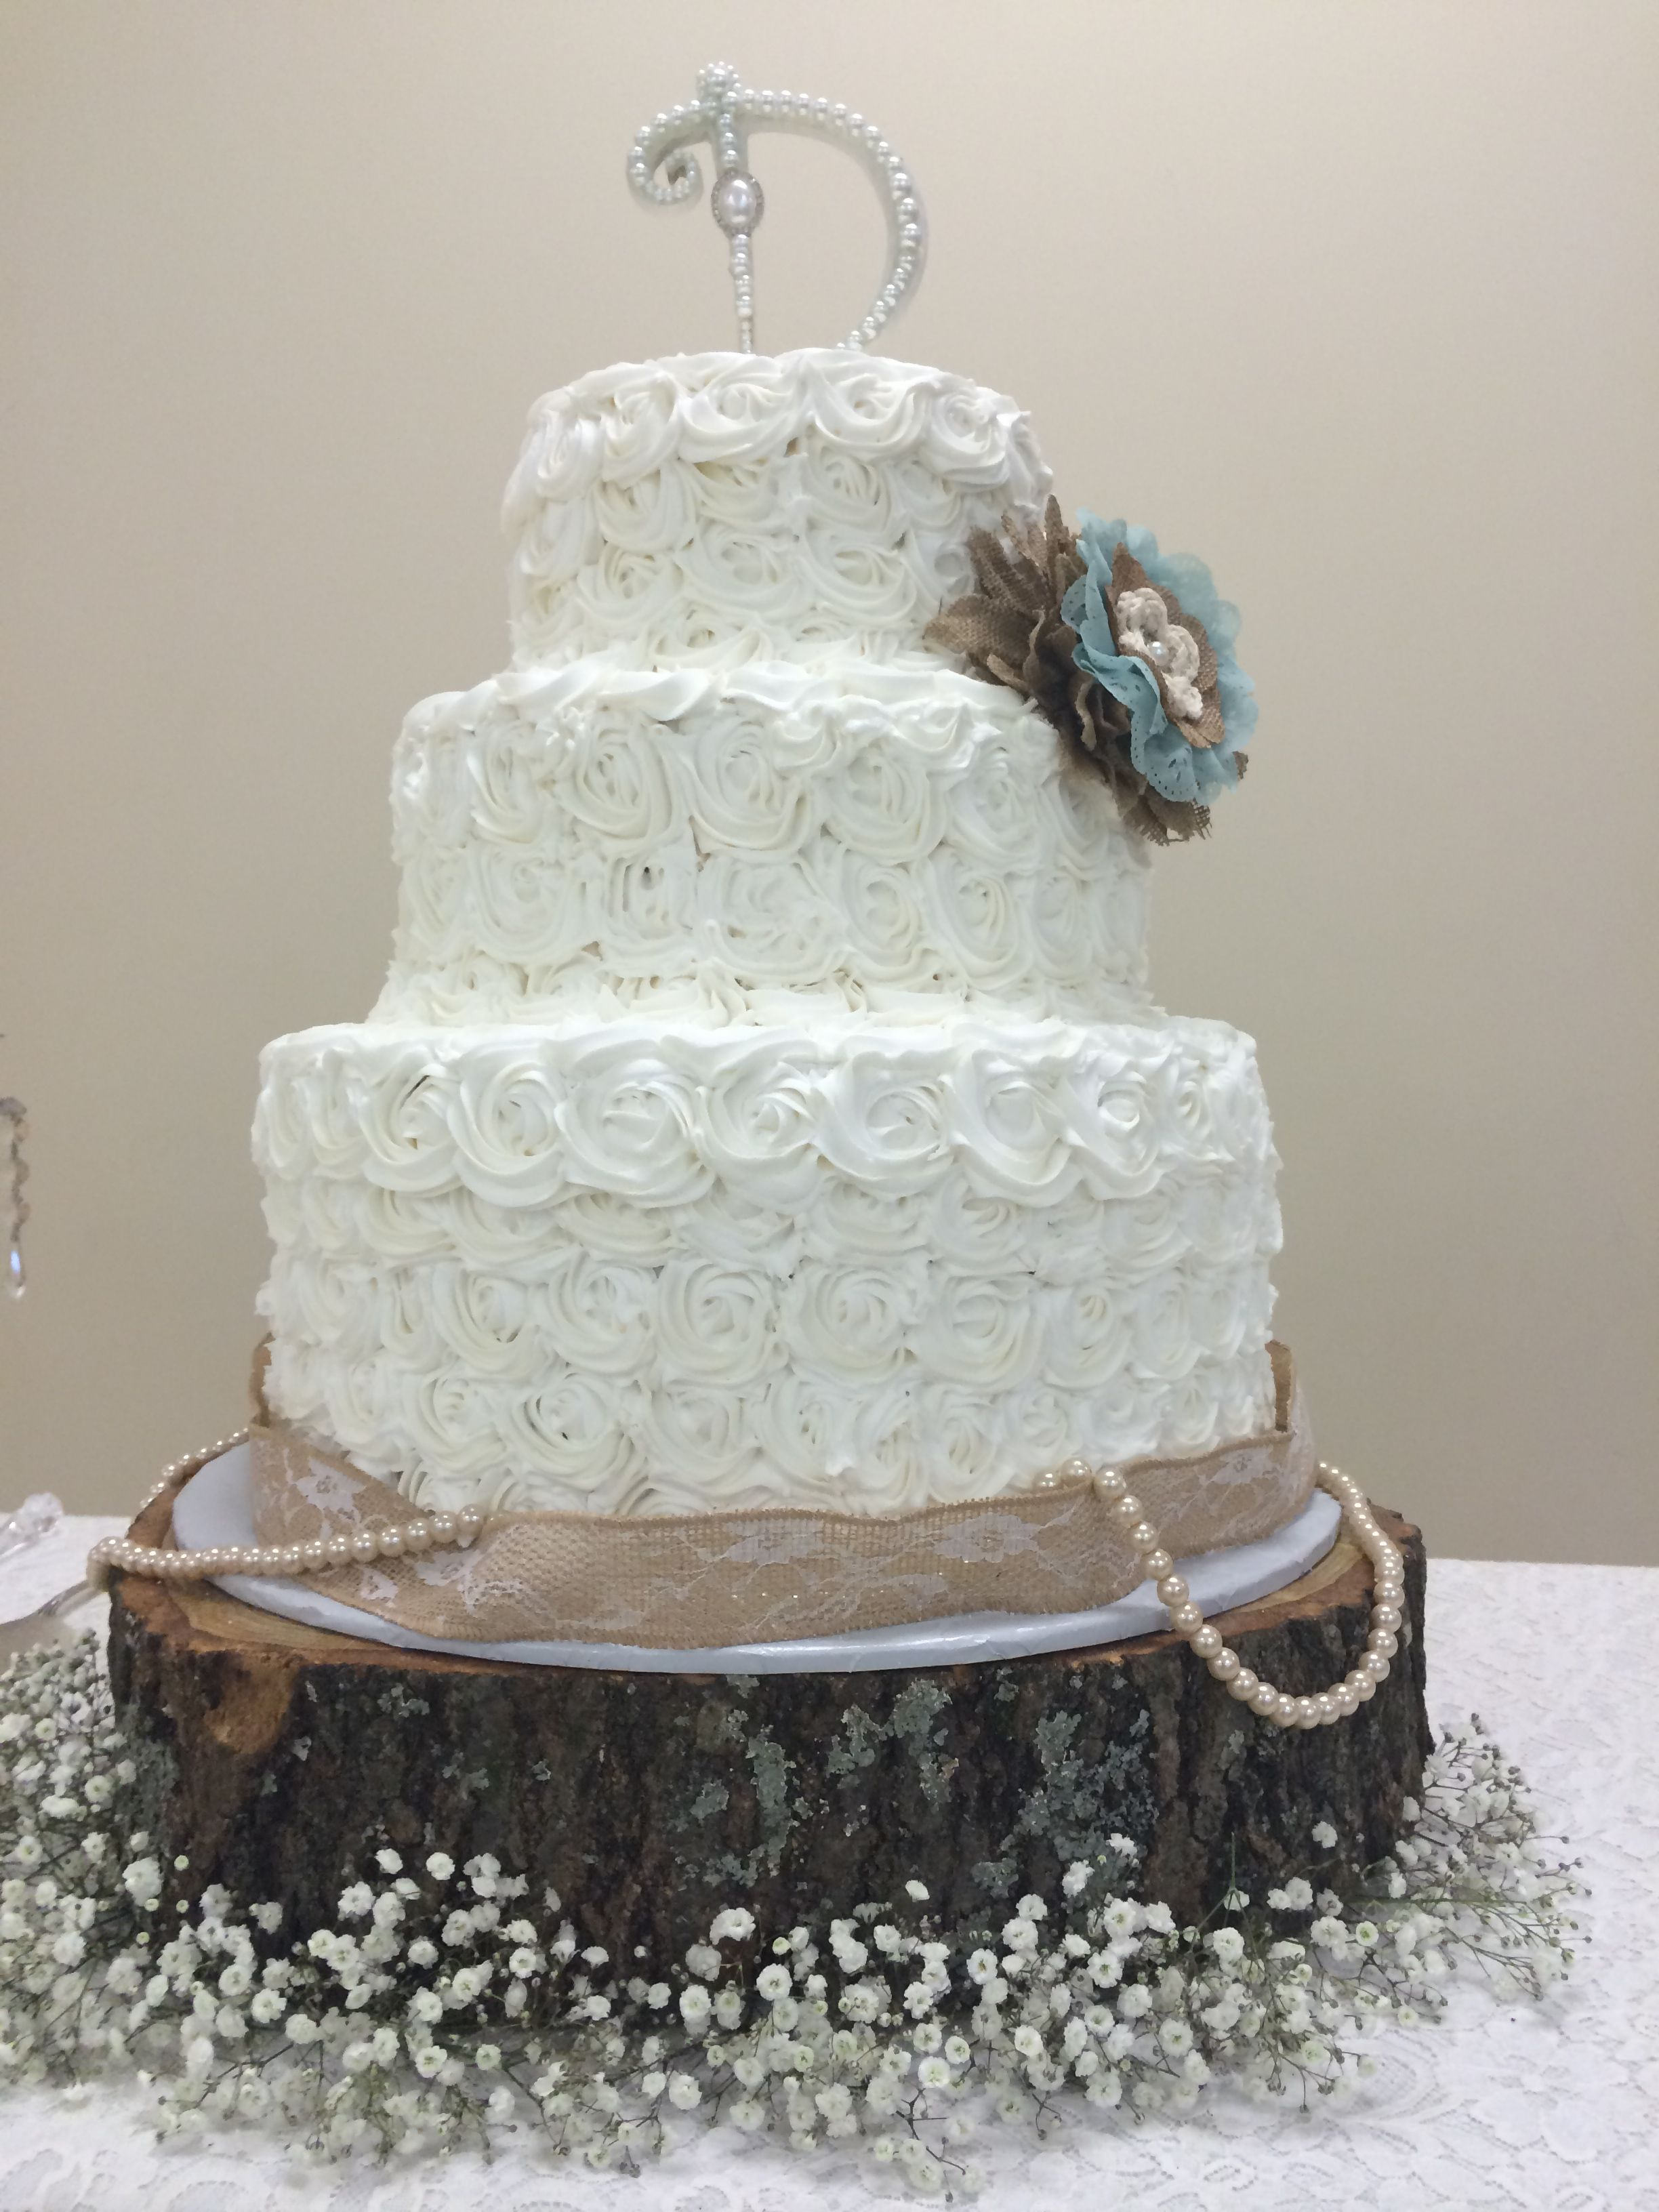 Pin by Madonna Wozniak on Cakes by Madonna How to make